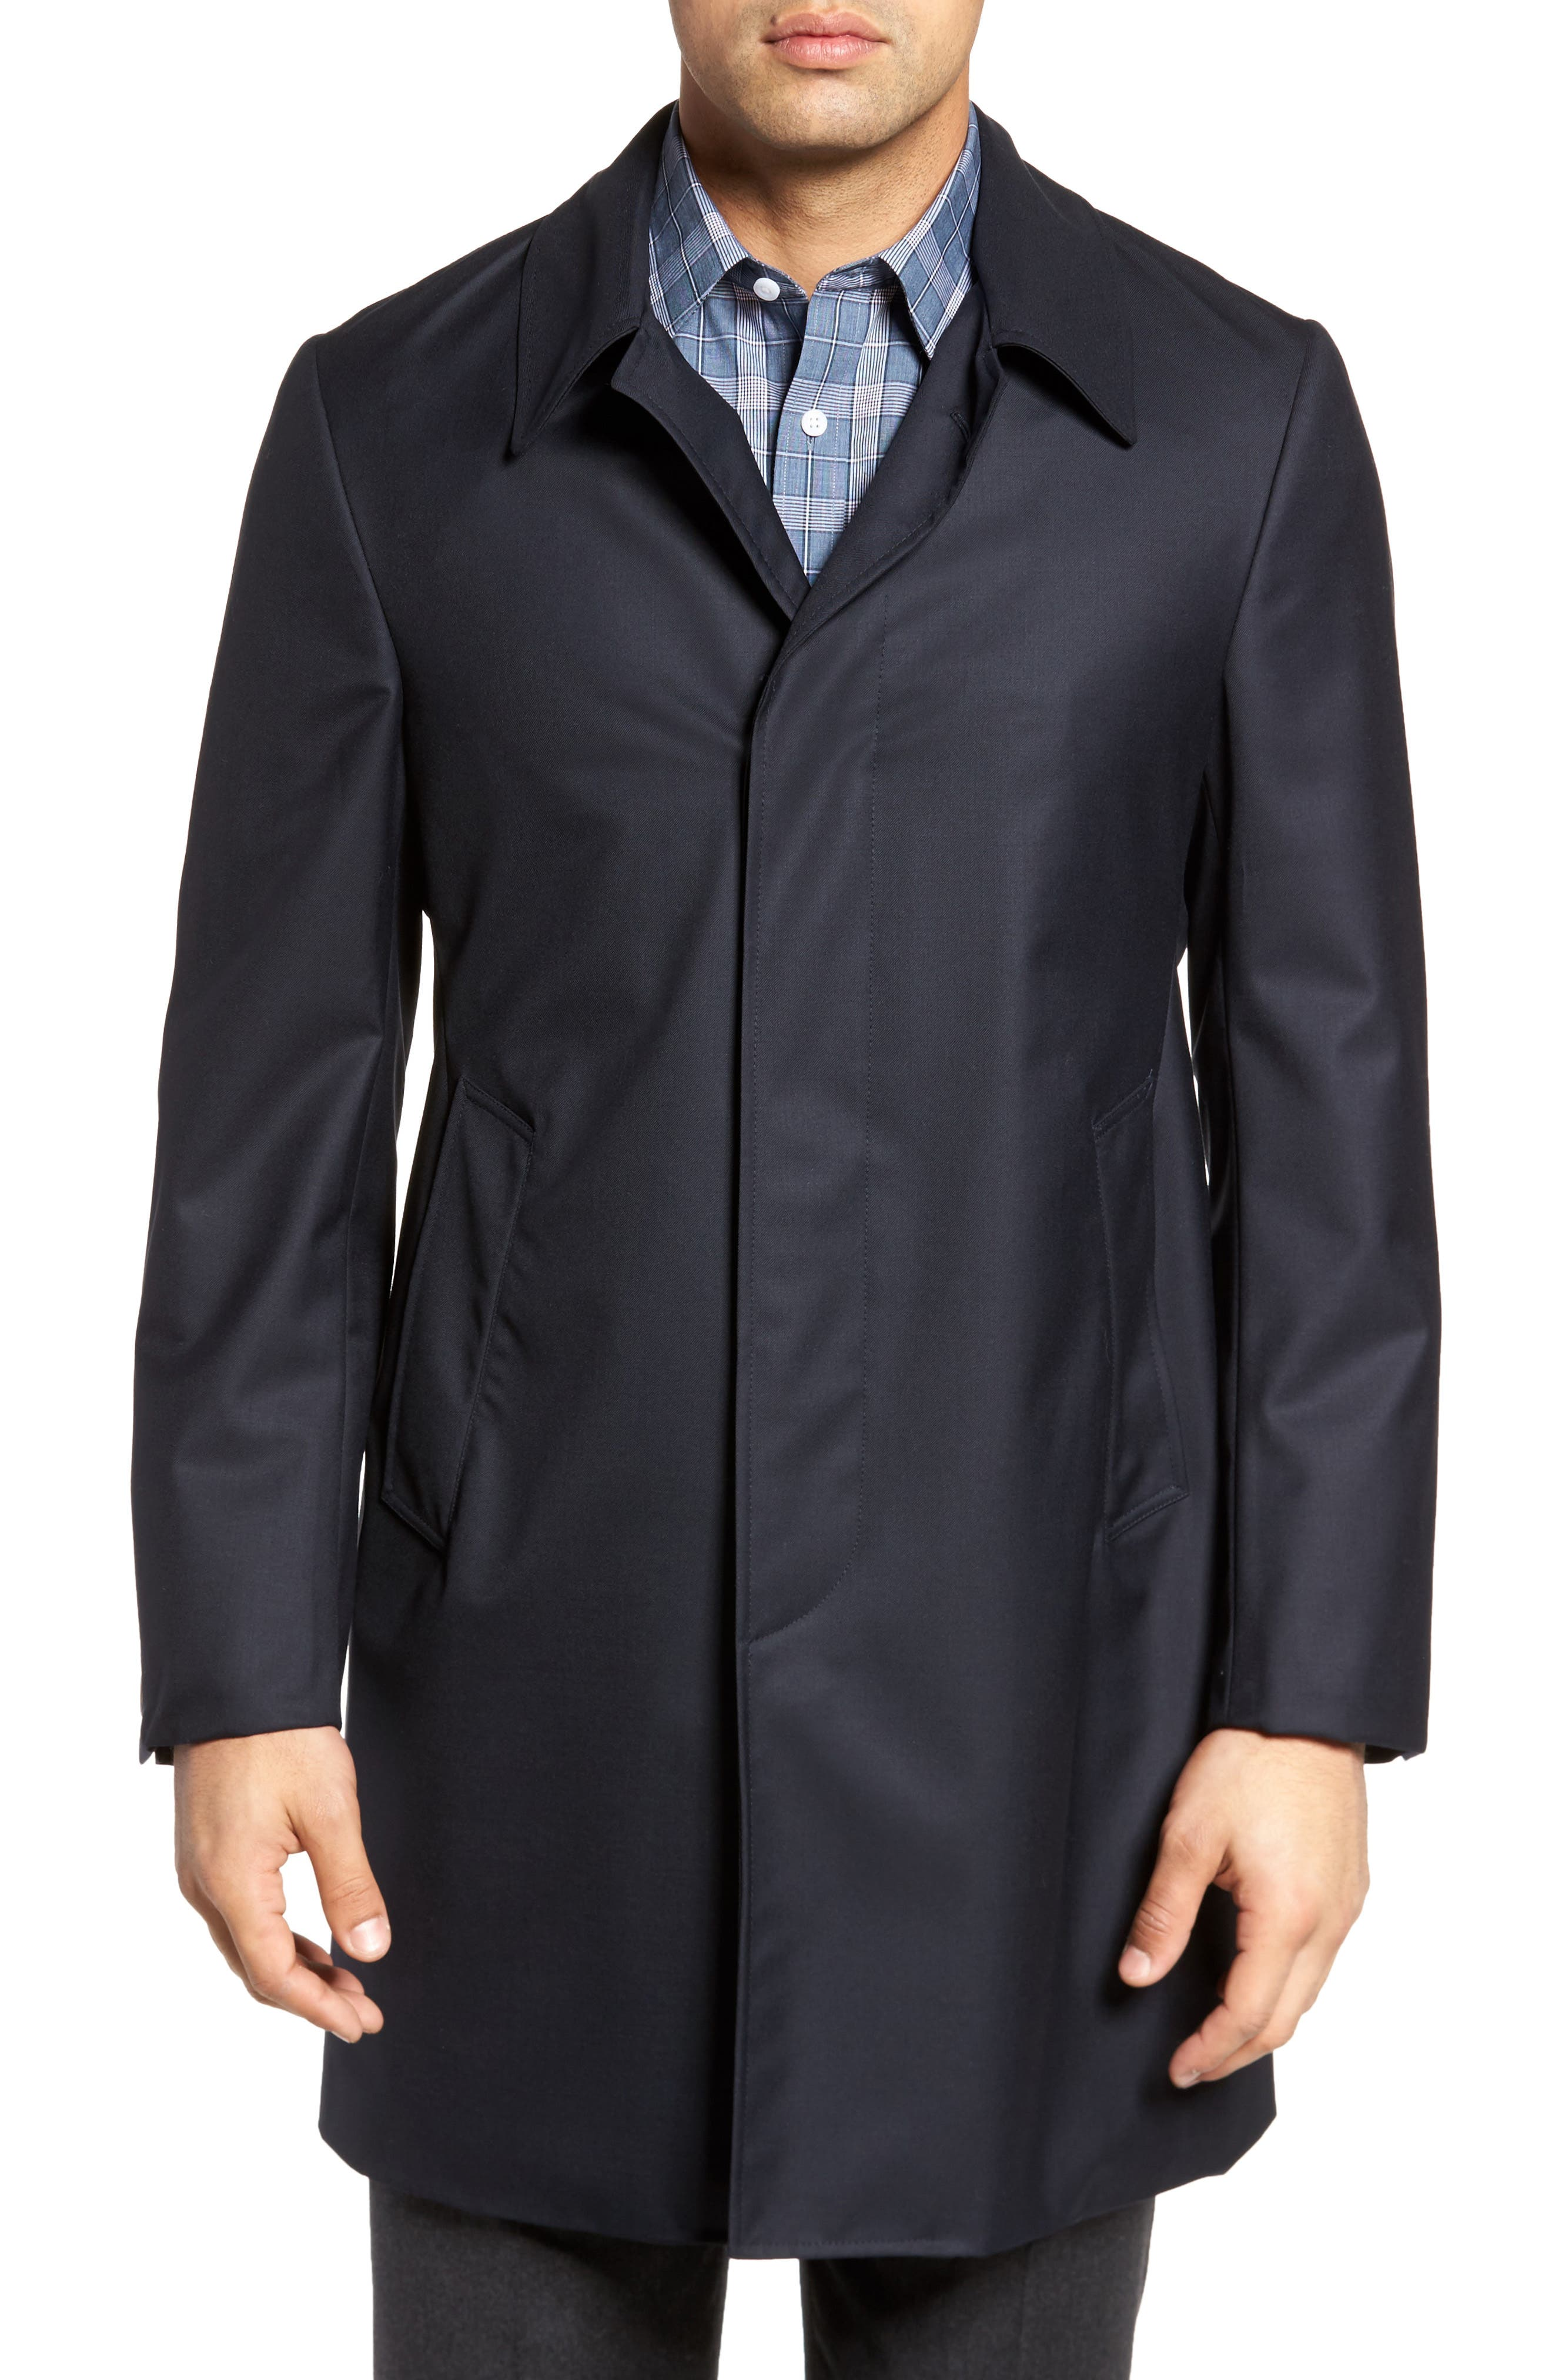 Classic Fit Wool & Cashmere Traveler Topcoat,                             Main thumbnail 1, color,                             NAVY SOLID